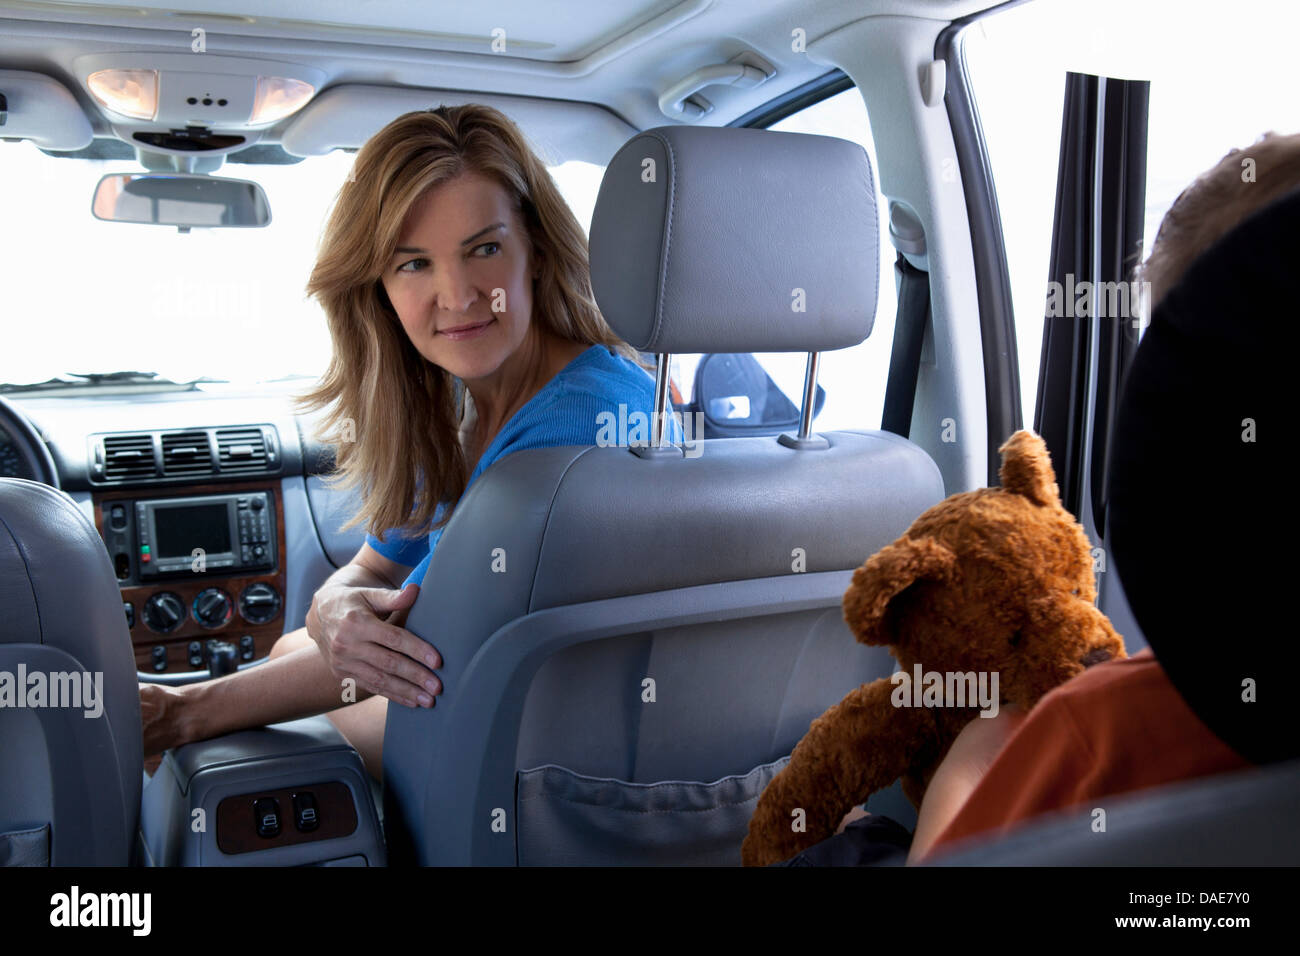 Mother turning around to child in car - Stock Image